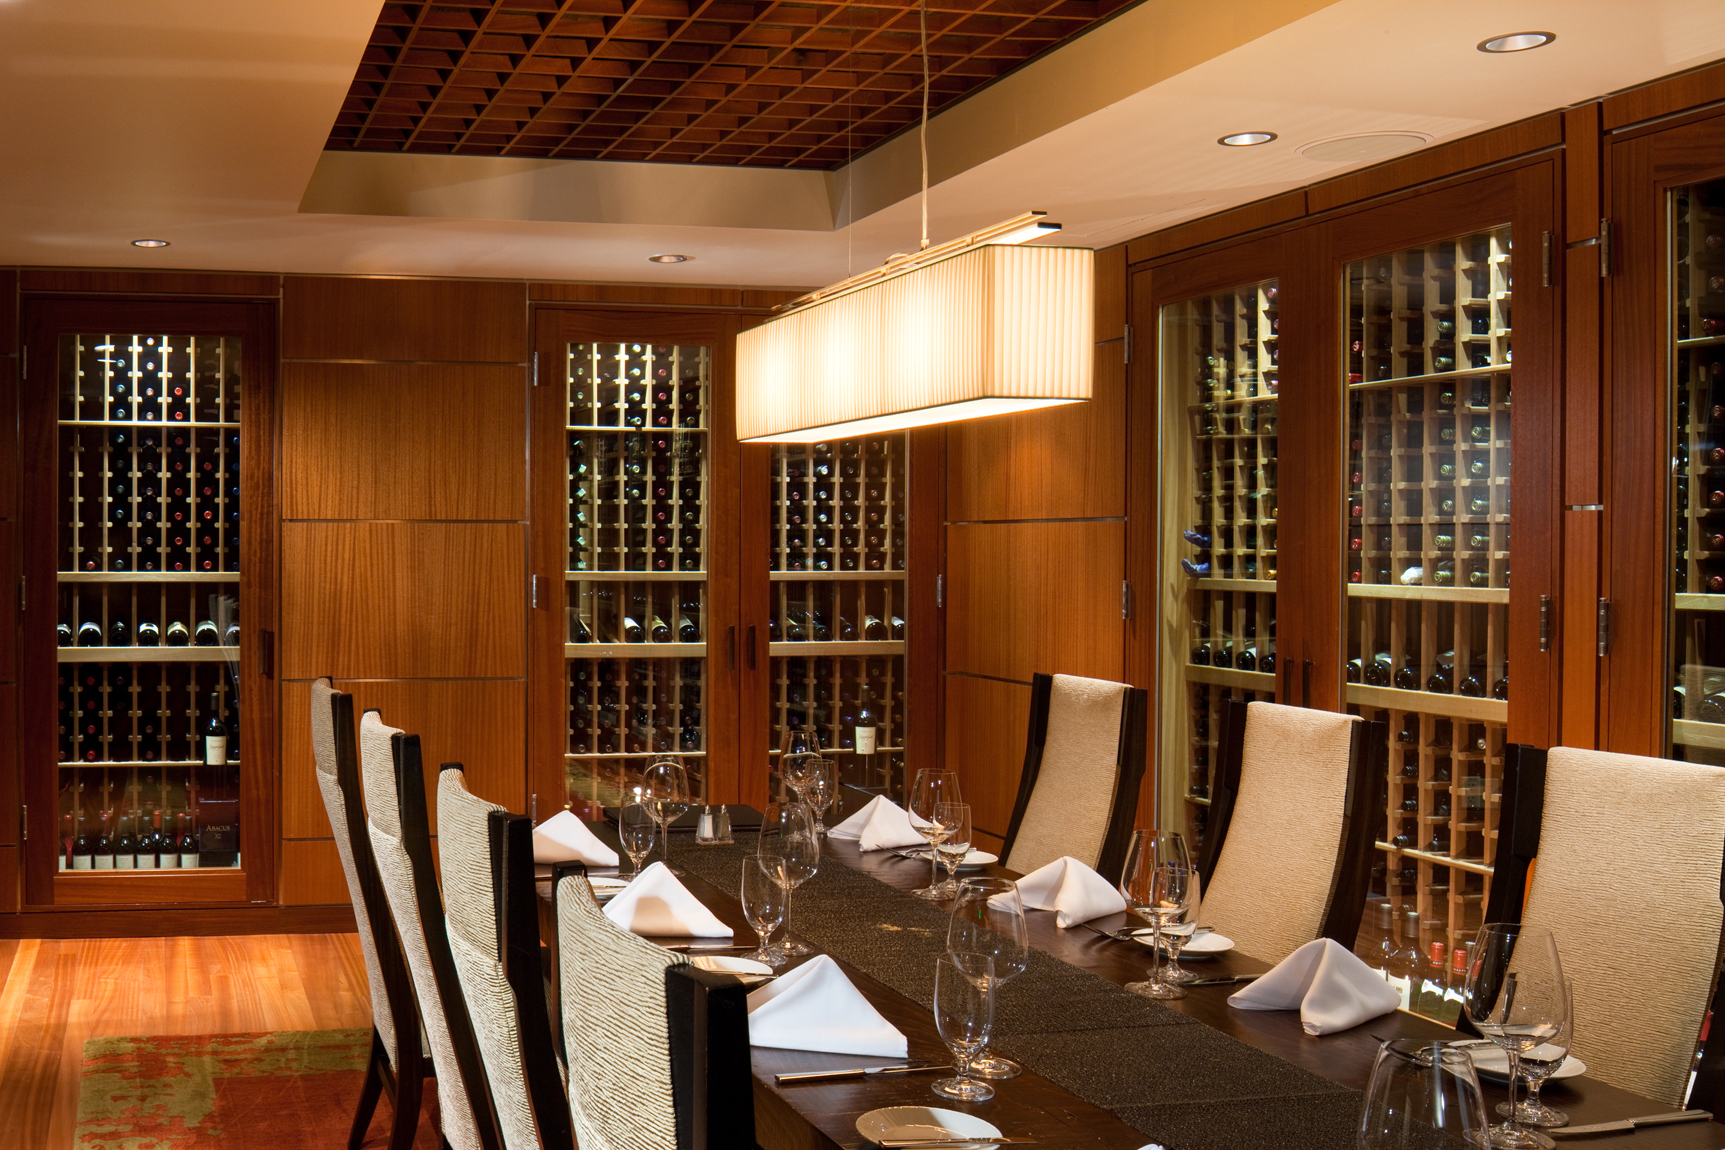 View of private dining room in a casino with wood panel walls and wine cabinets.Hospitality, resort, casino, photography in Scottsdale, AZ.